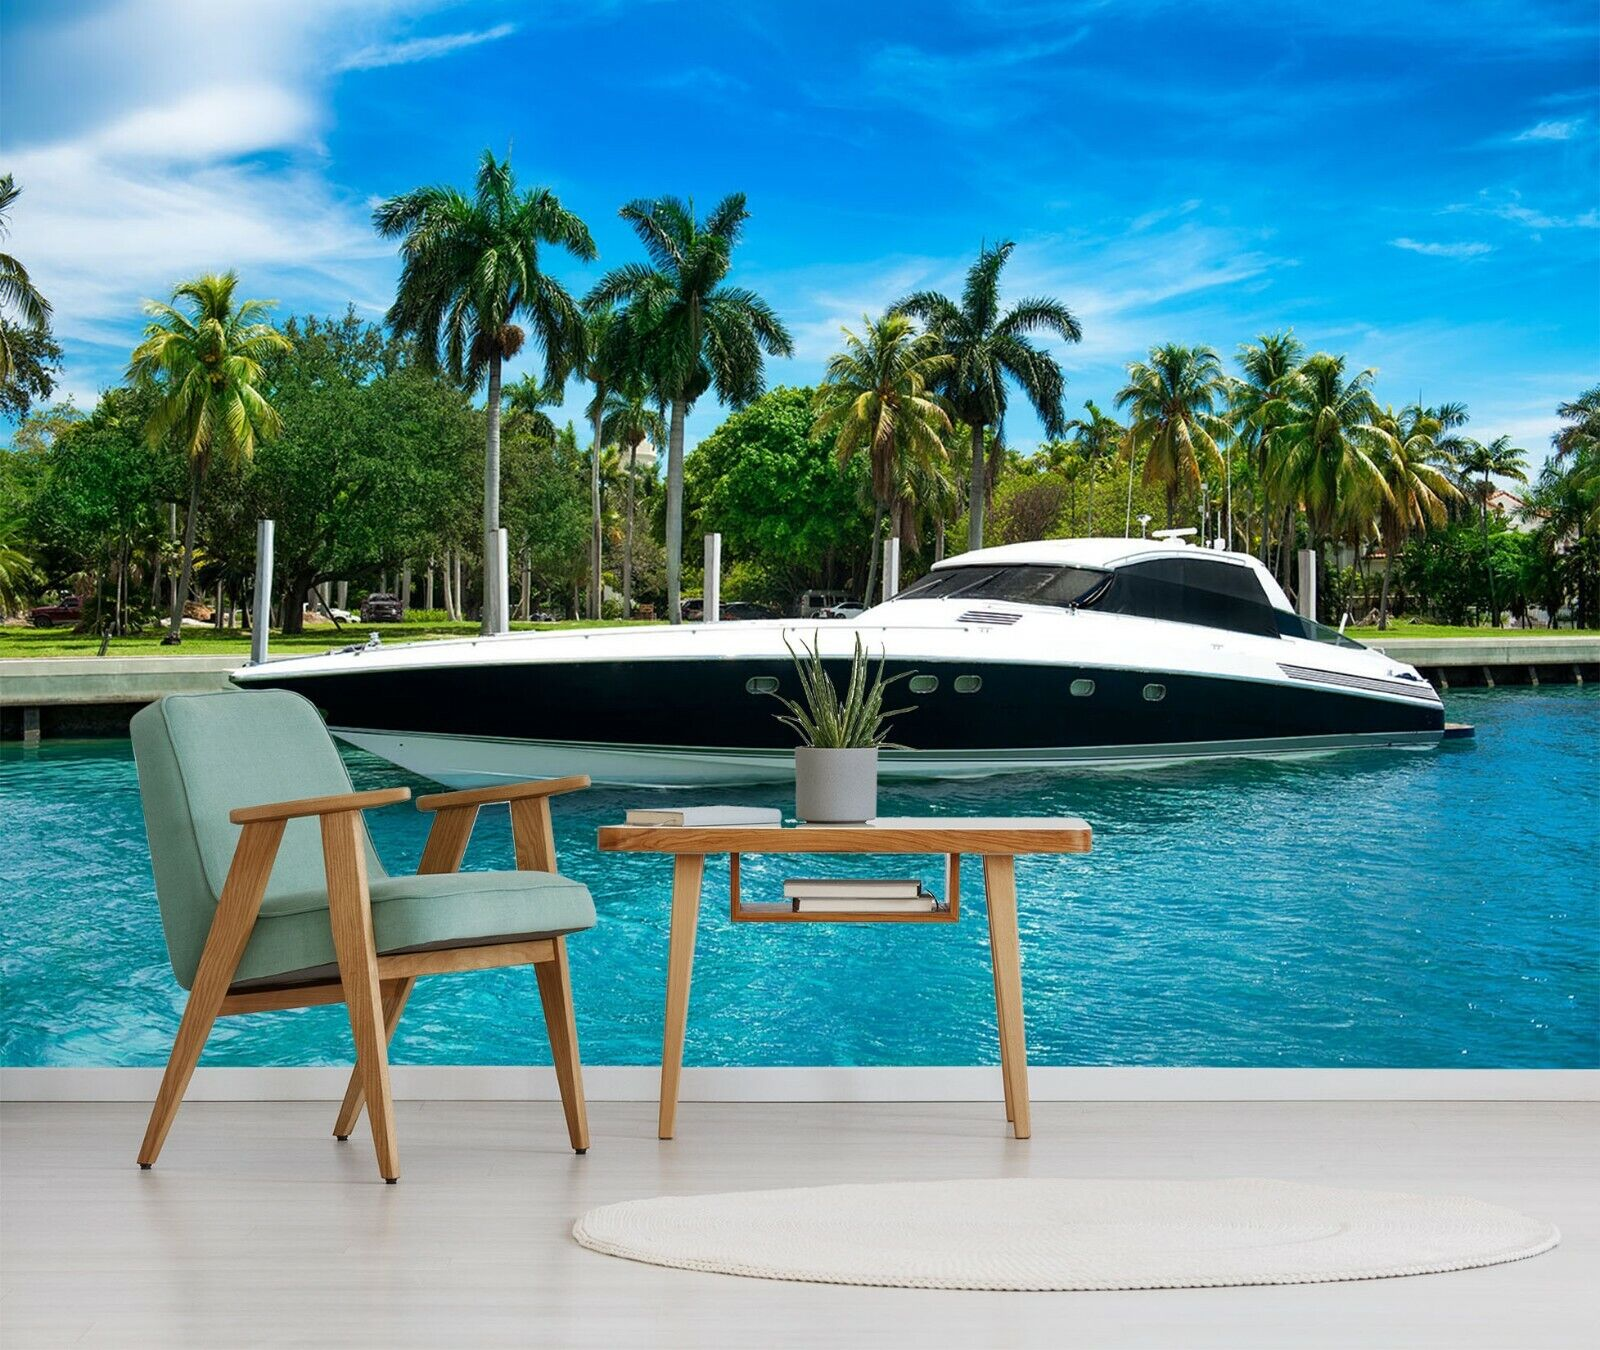 3D Luxury Yachts R32 Transport WandPapier Mural Sefl-adhesive Removable Zoe